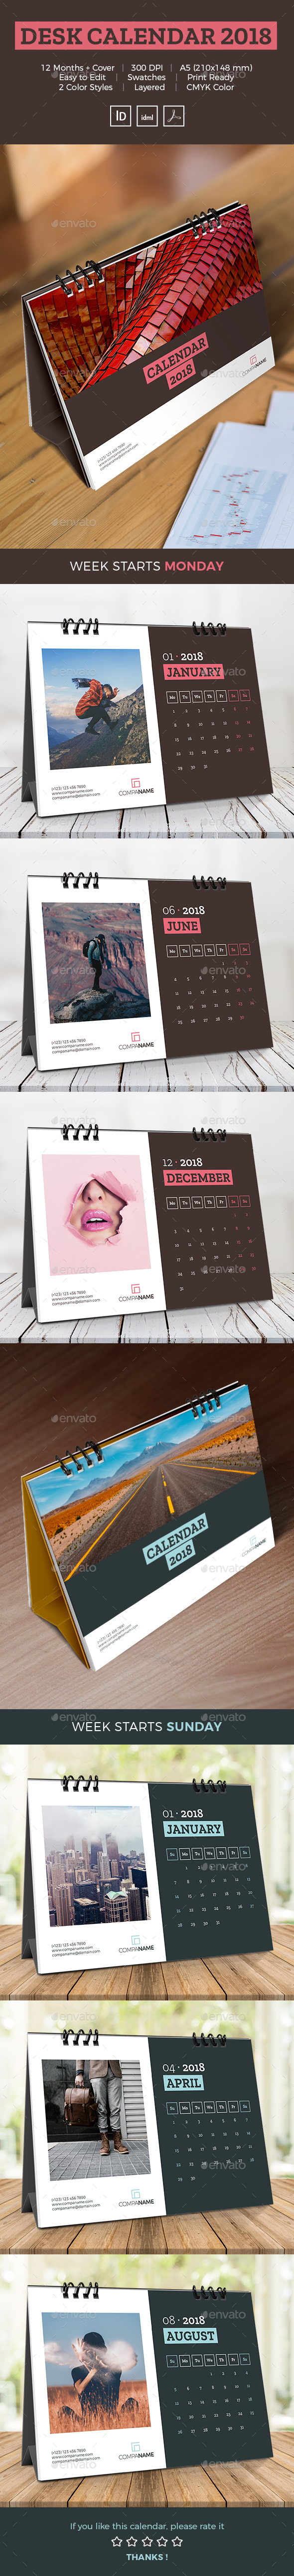 GraphicRiver Desk Calendar 2018 21088181